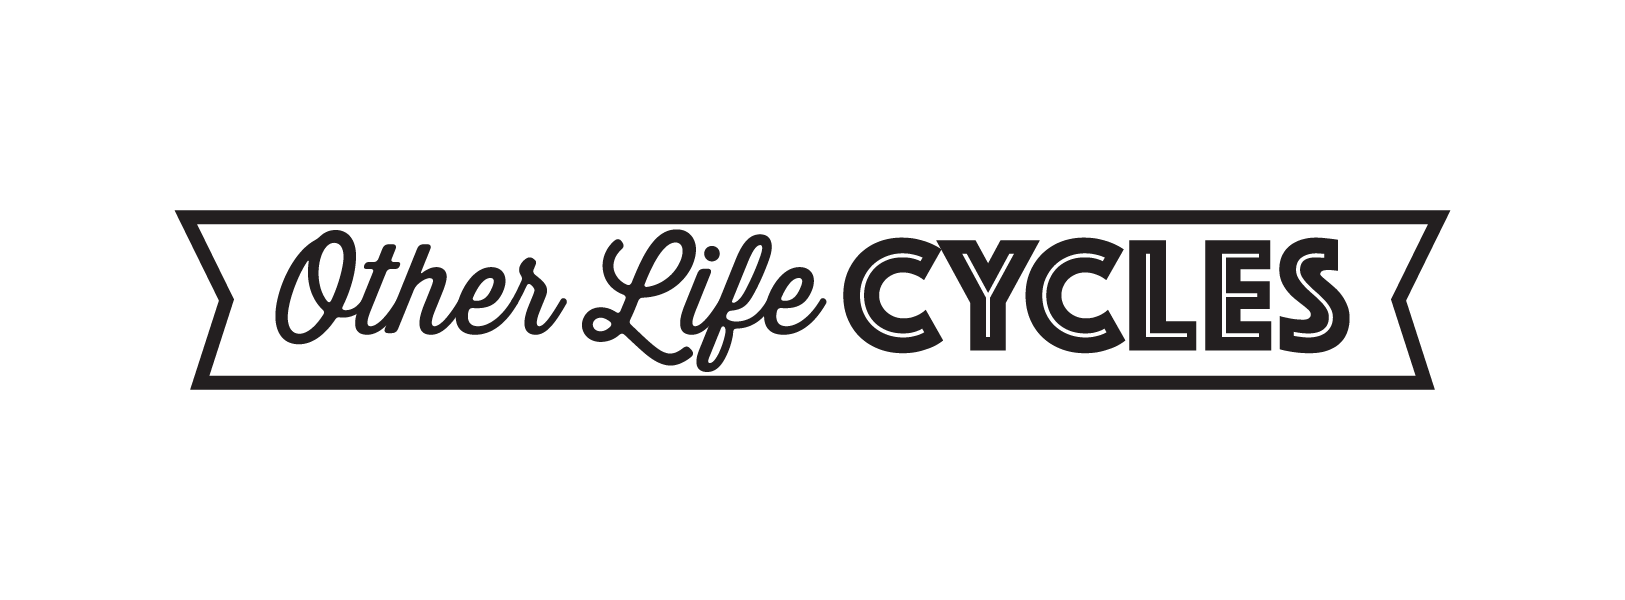 otherlifecycles